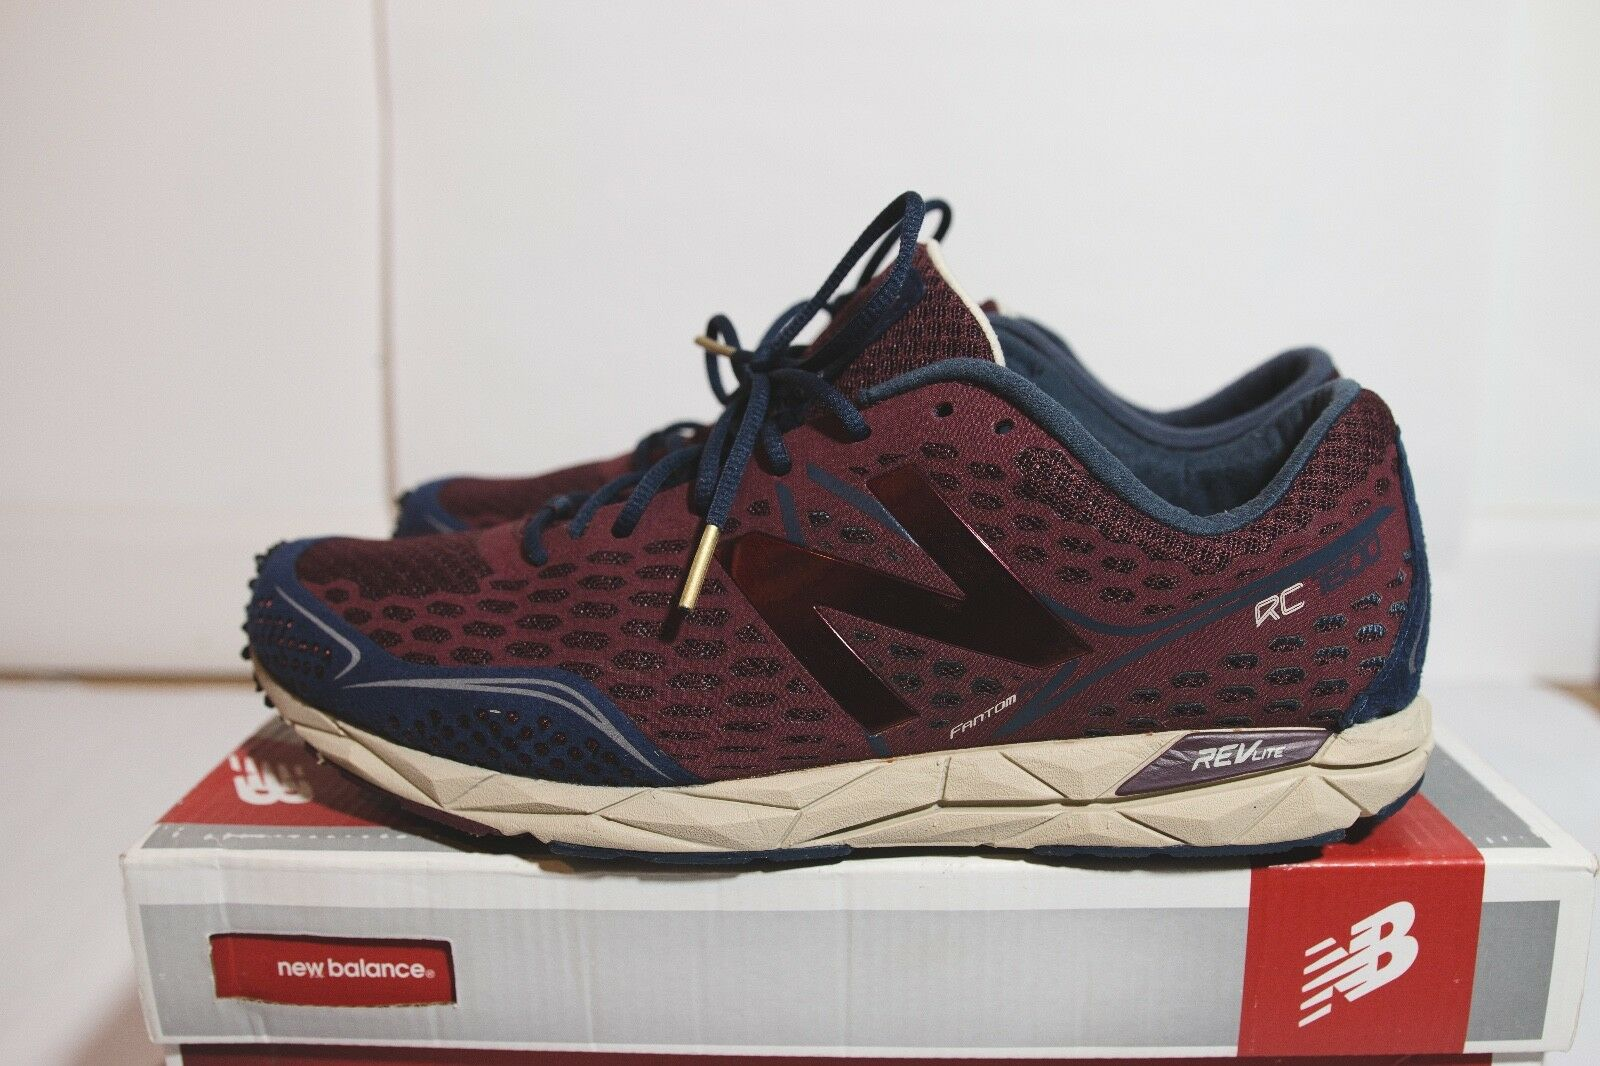 New Balance Men's Running Sneakers 9.5 and size 9 Maroon Burgundy Red bluee